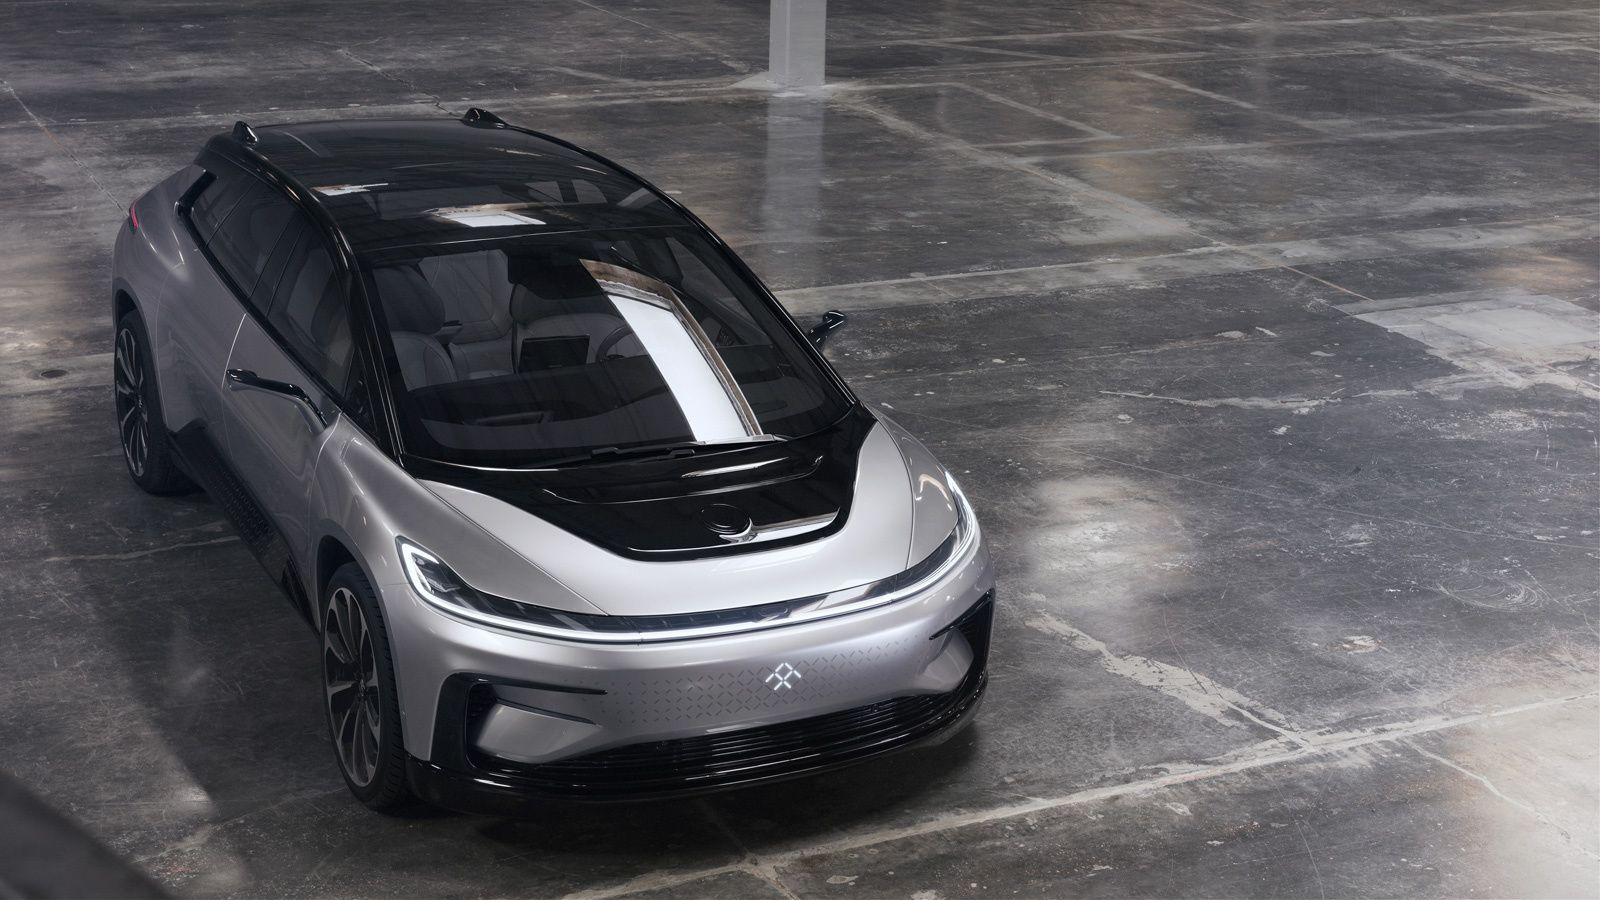 Faraday Future Launches Its First Electric Car The Ff 91 Faraday Future Car Concept Cars